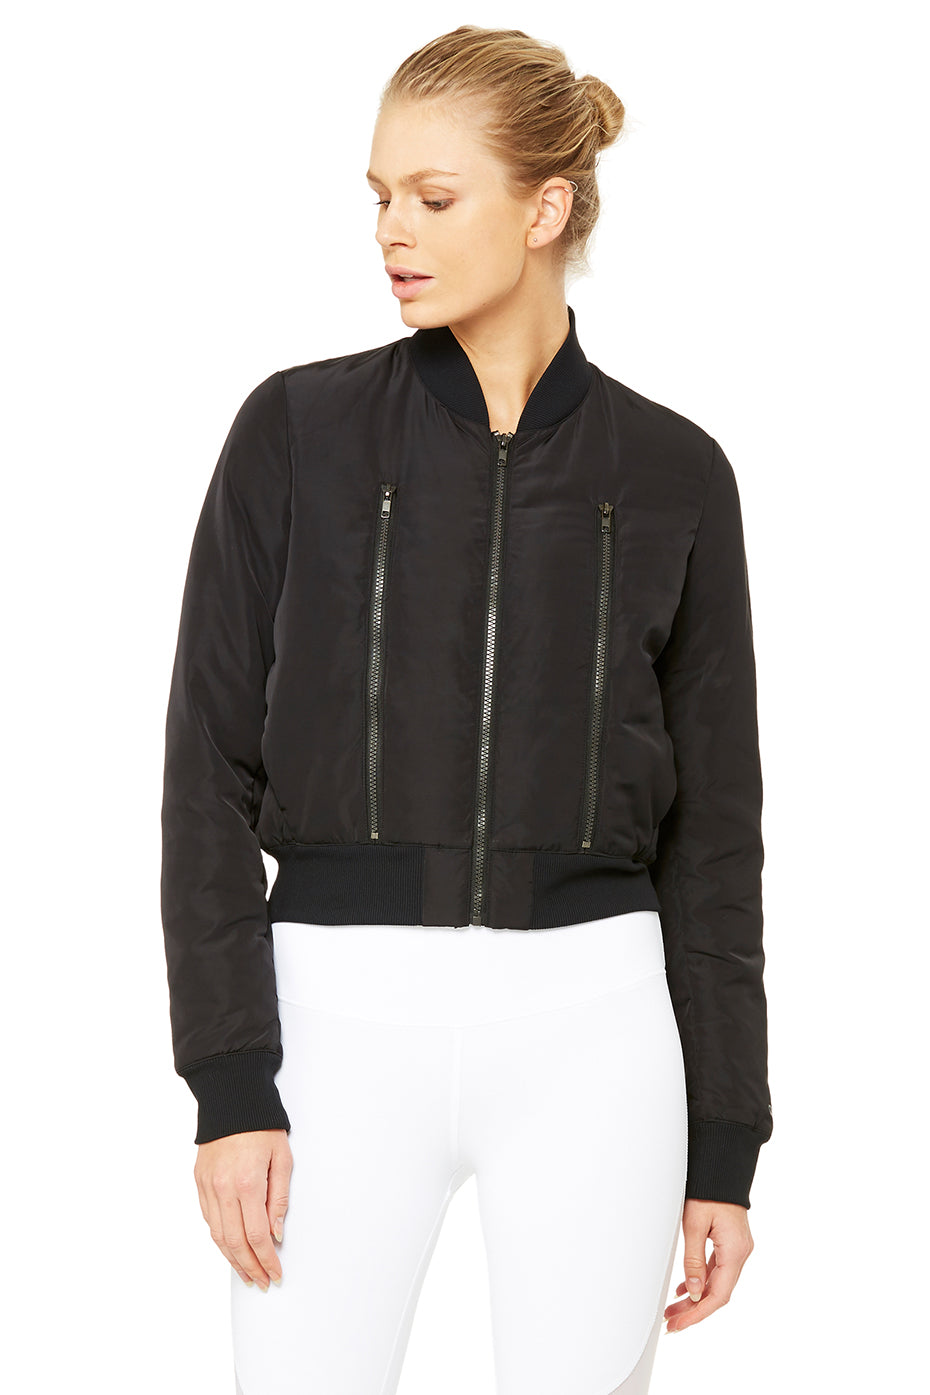 Off-Duty Bomber Jacket 2